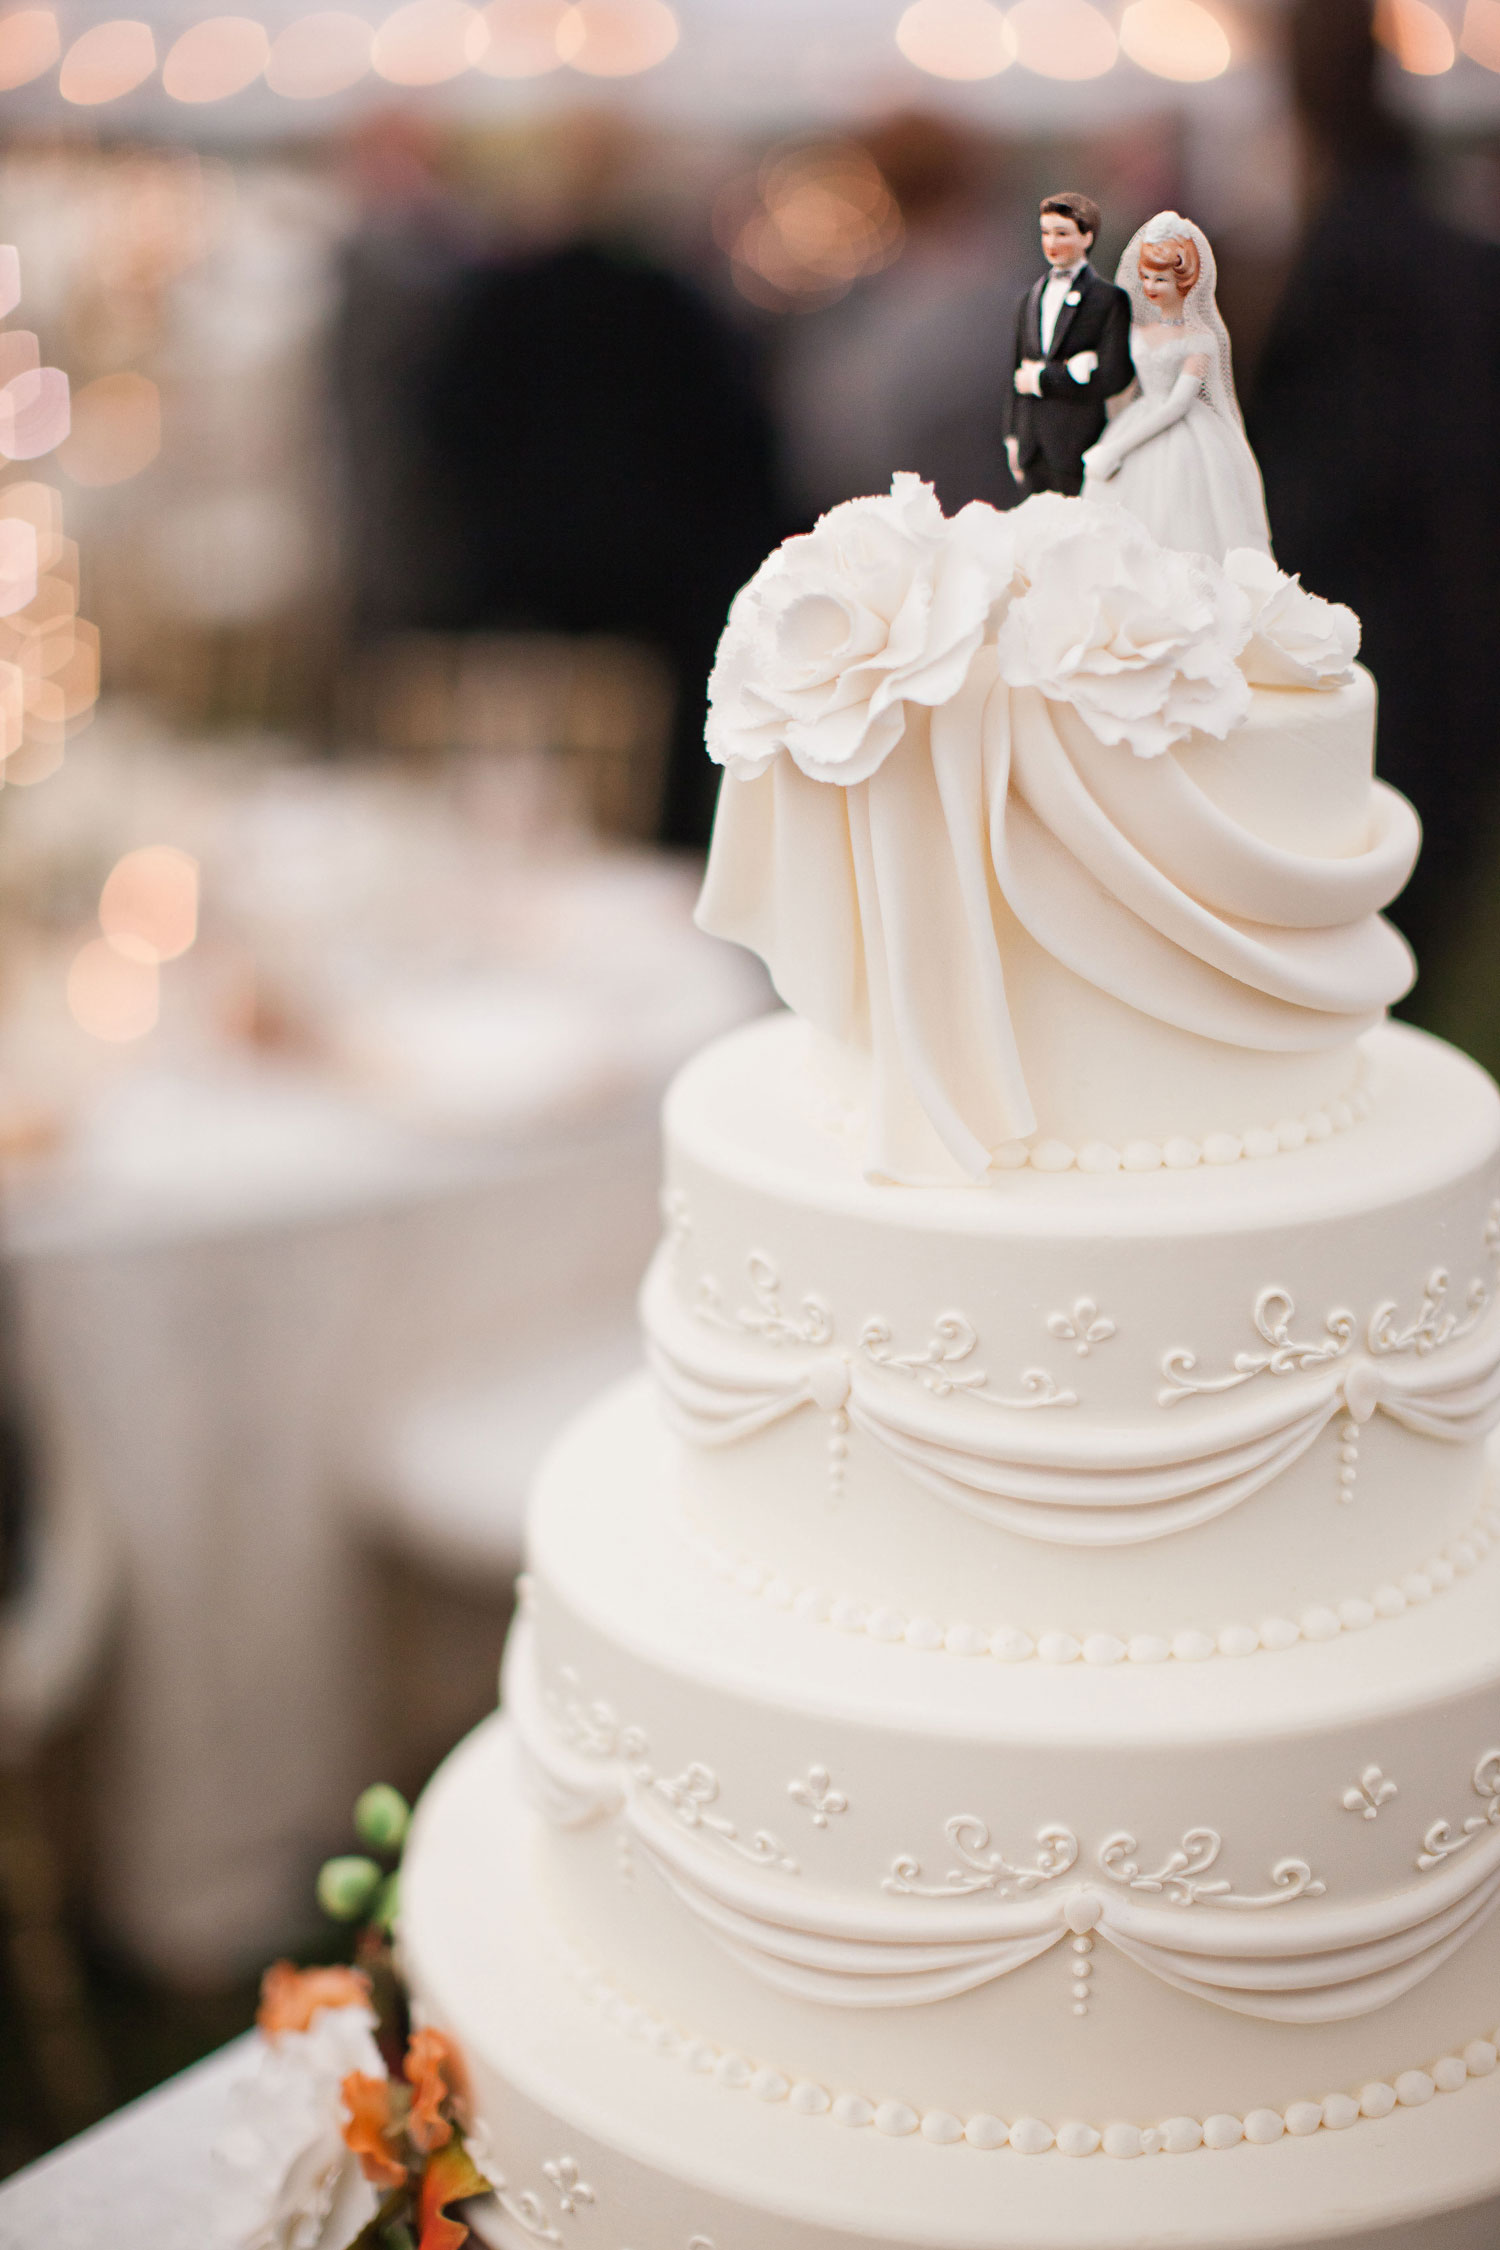 Classic vintage wedding cake with filigree detail and classic cake topper